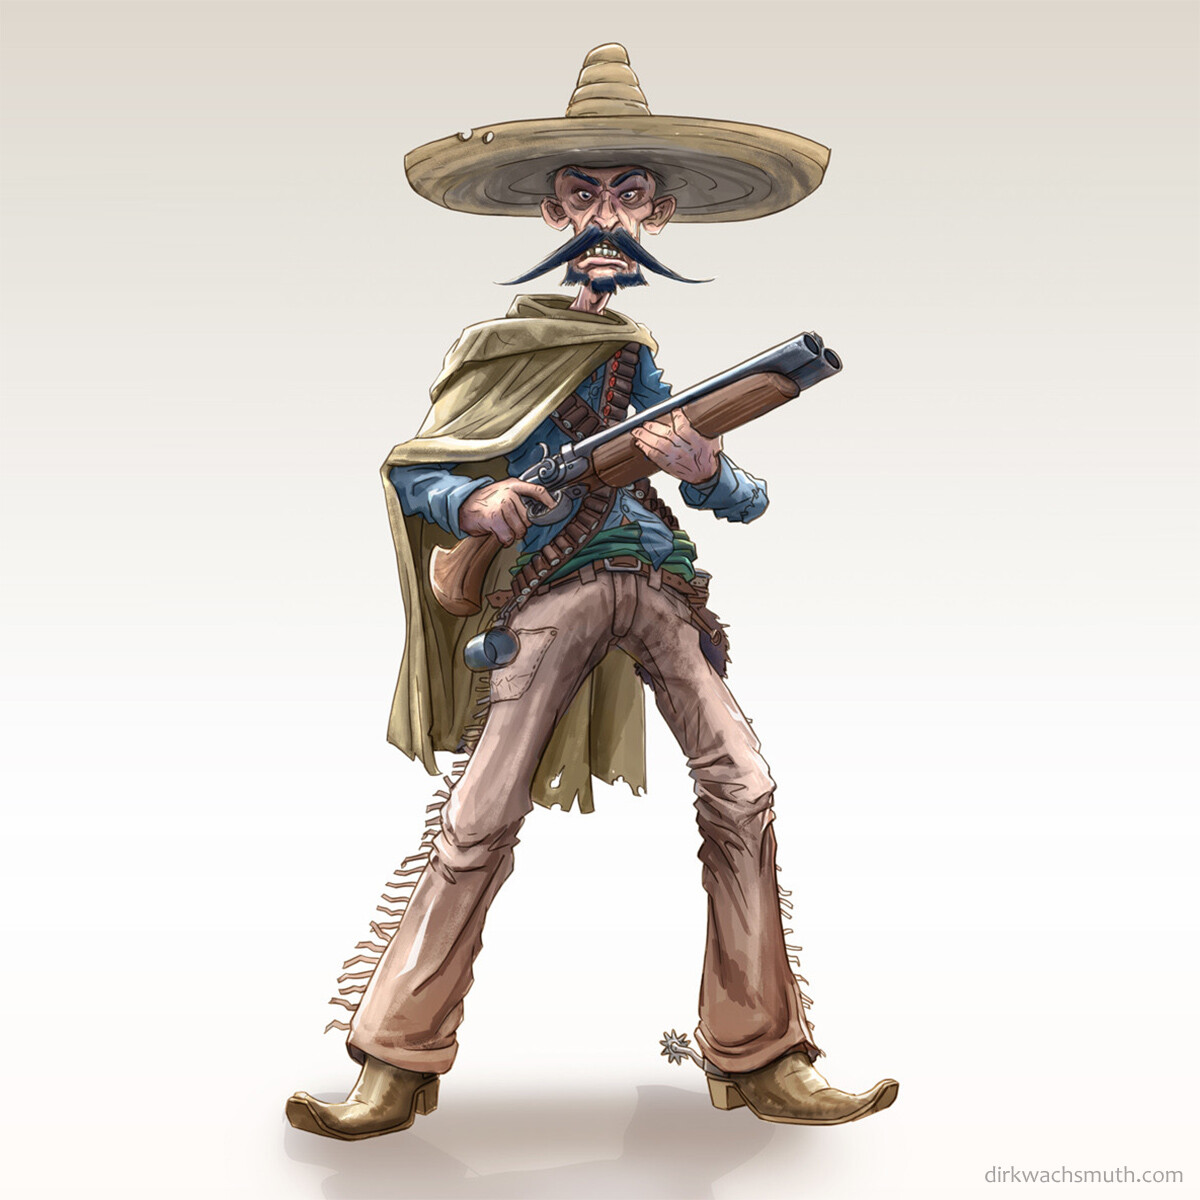 My concept from the 'Wild West Challenge'